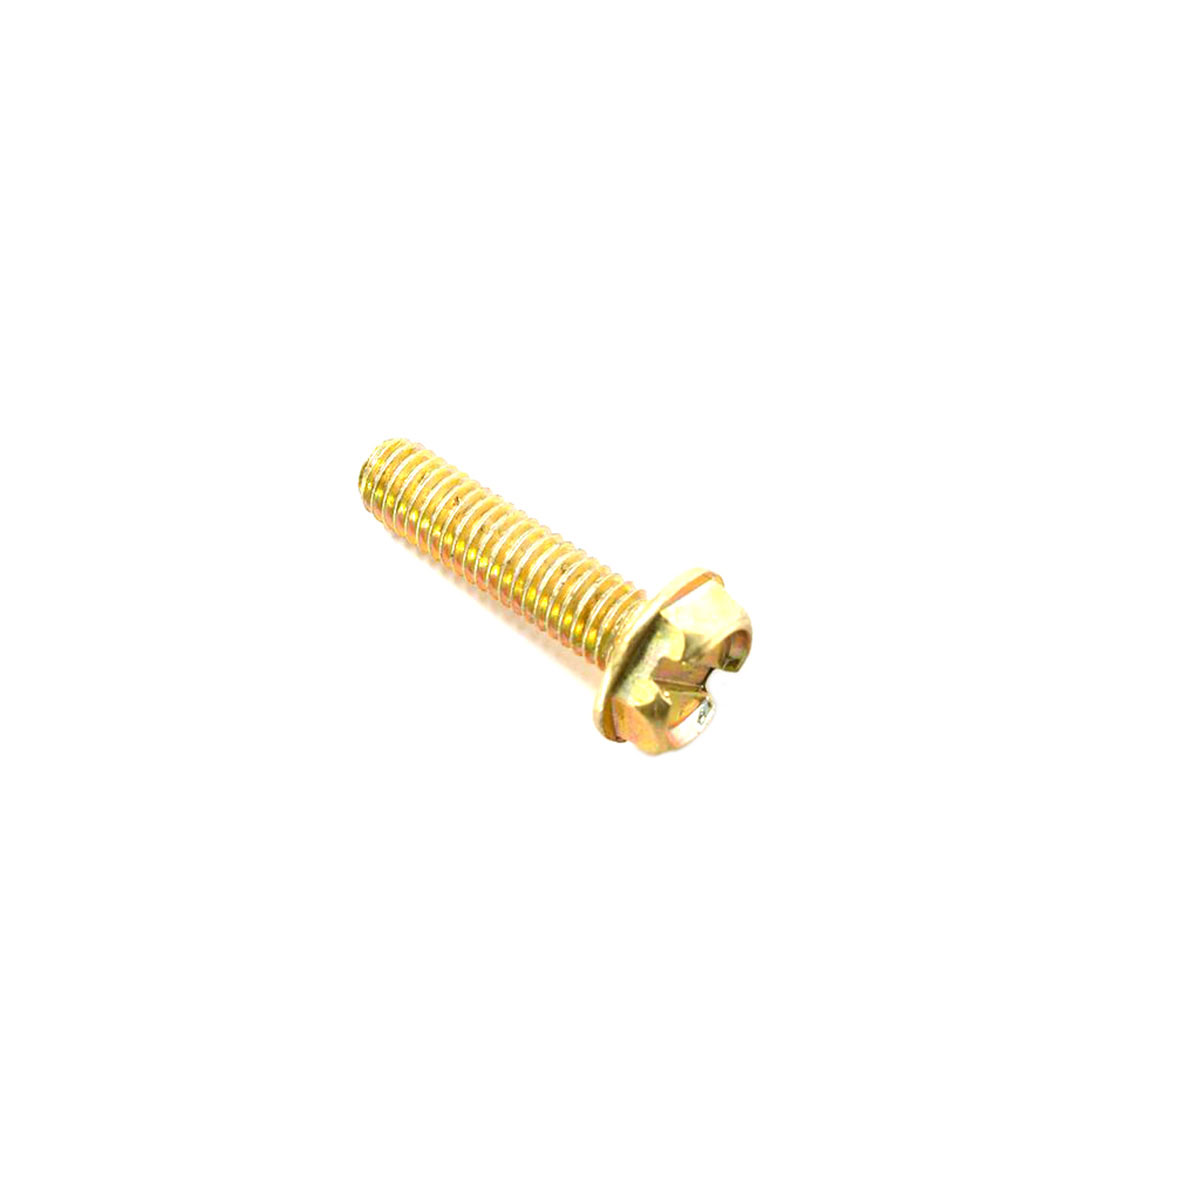 Scag Hex Slotted Washer Head+C189 Screw #10-32 x 3/4 inch 04010-12